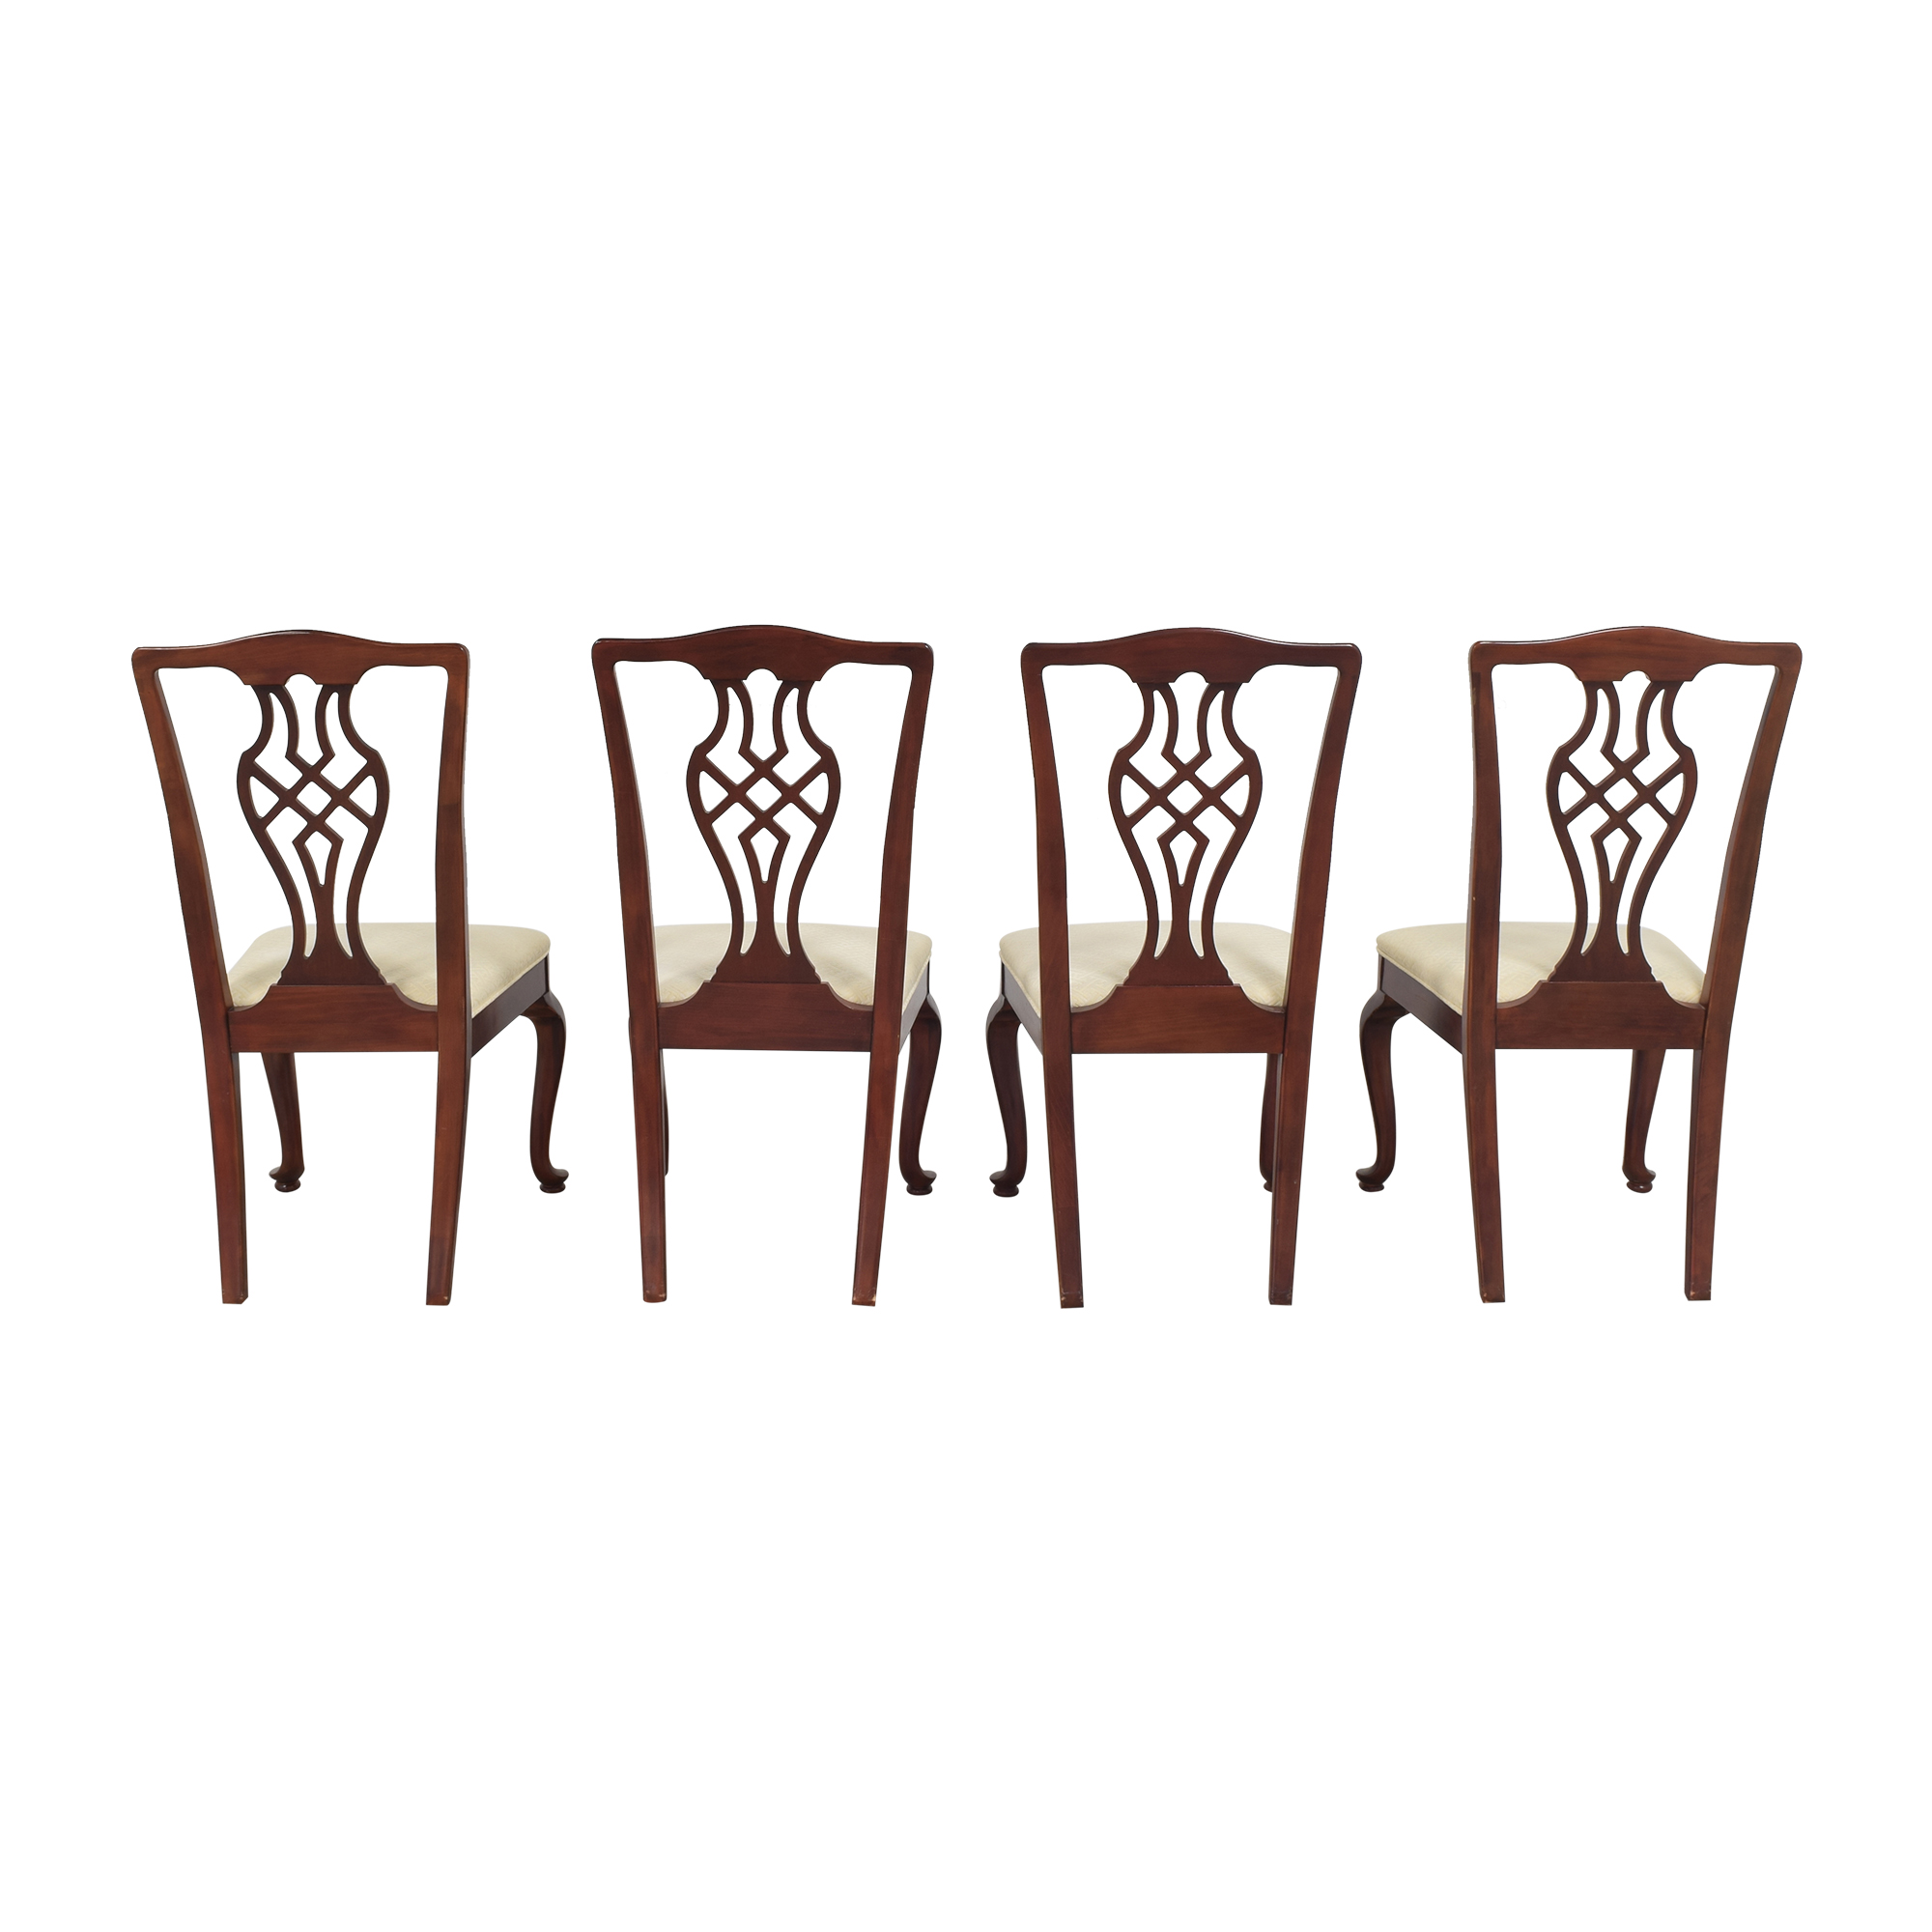 Drexel Heritage Drexel Heritage Chippendale Dining Chairs off white and brown